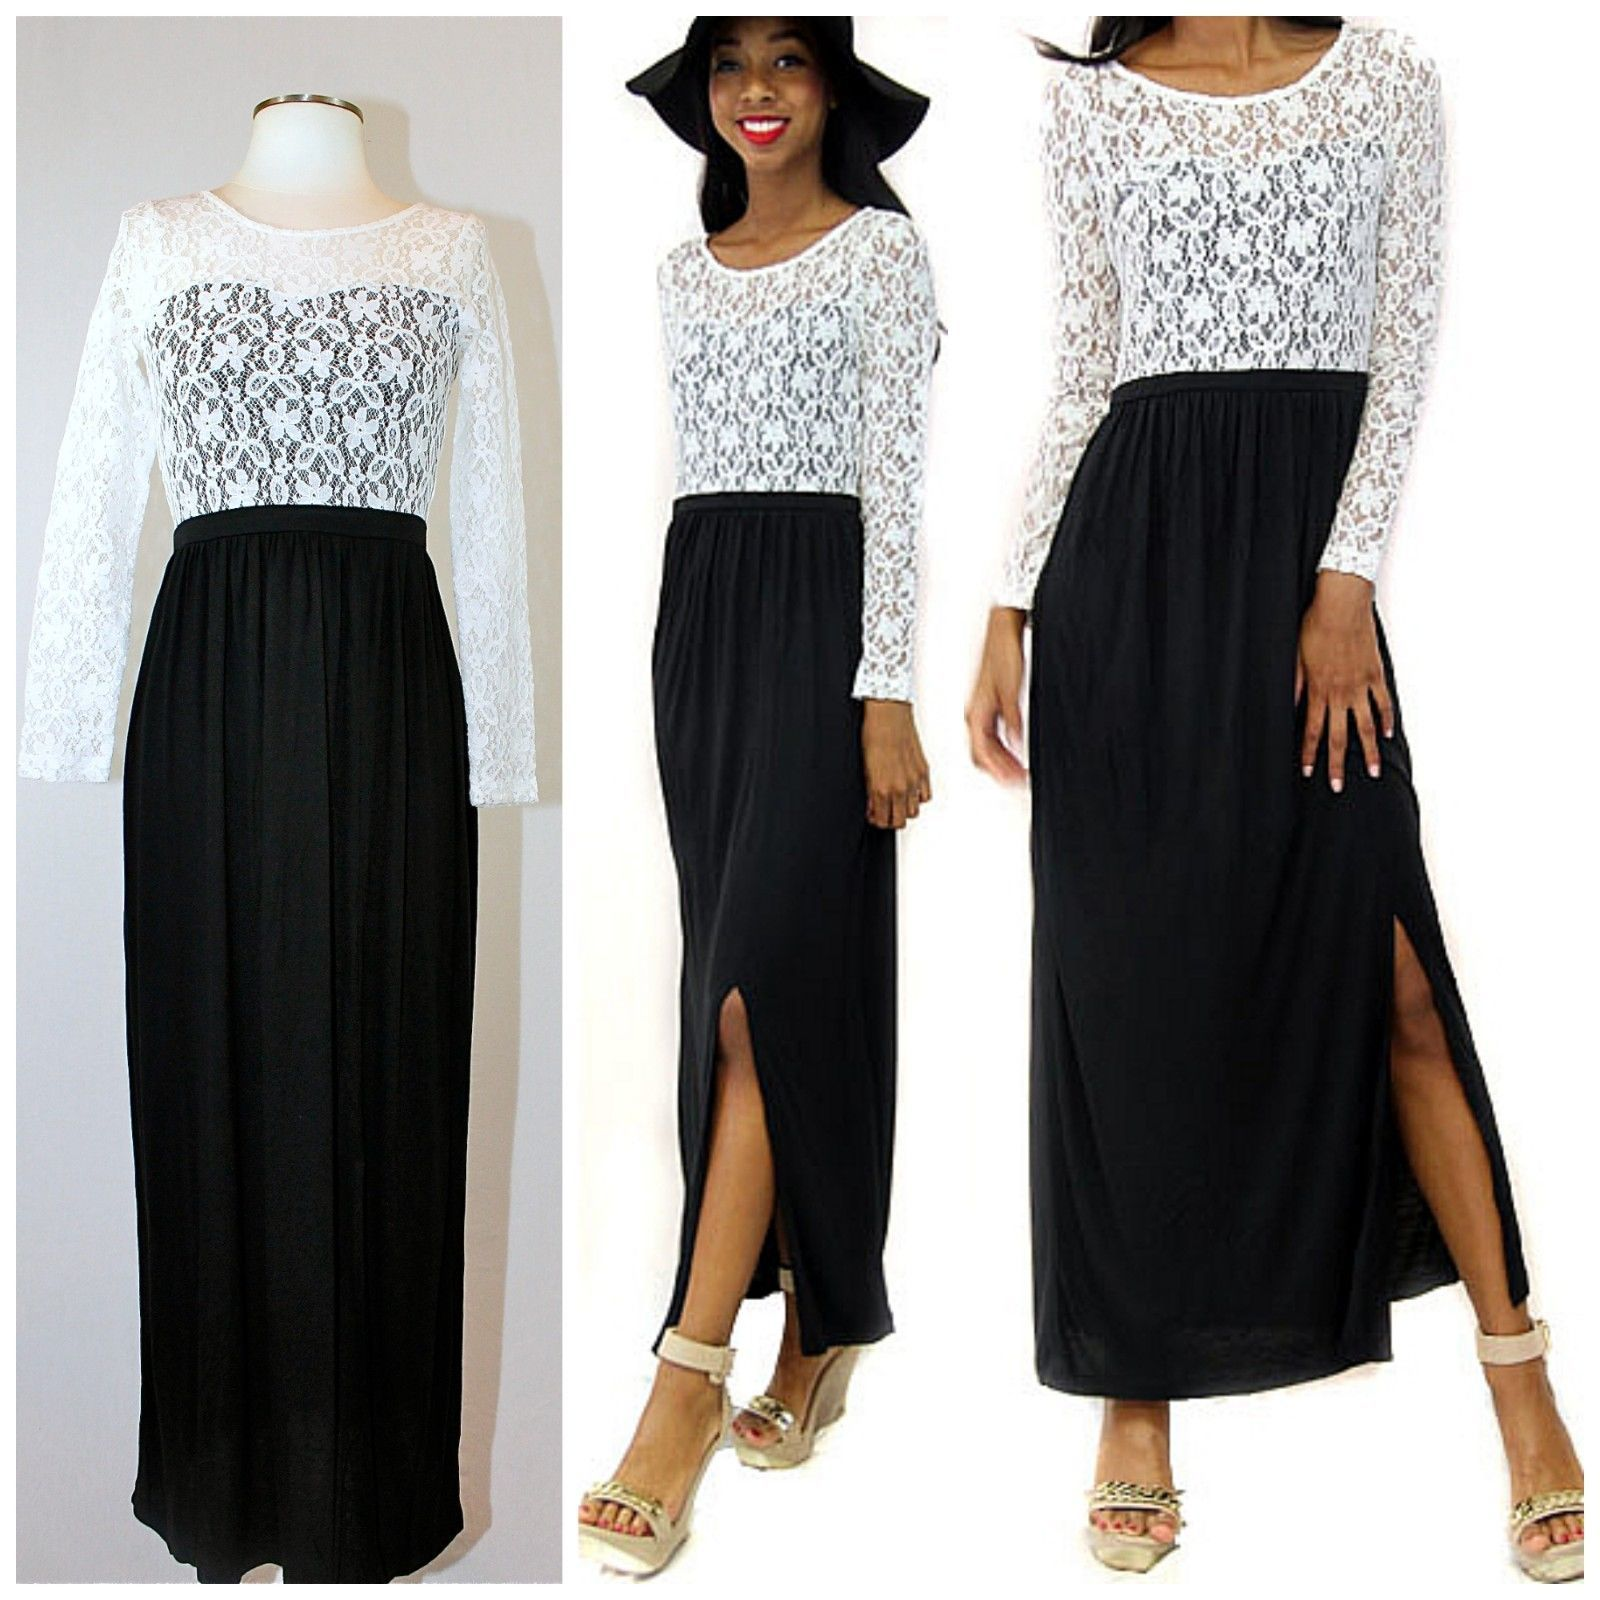 Maxi dress with sleeves ebay classifieds